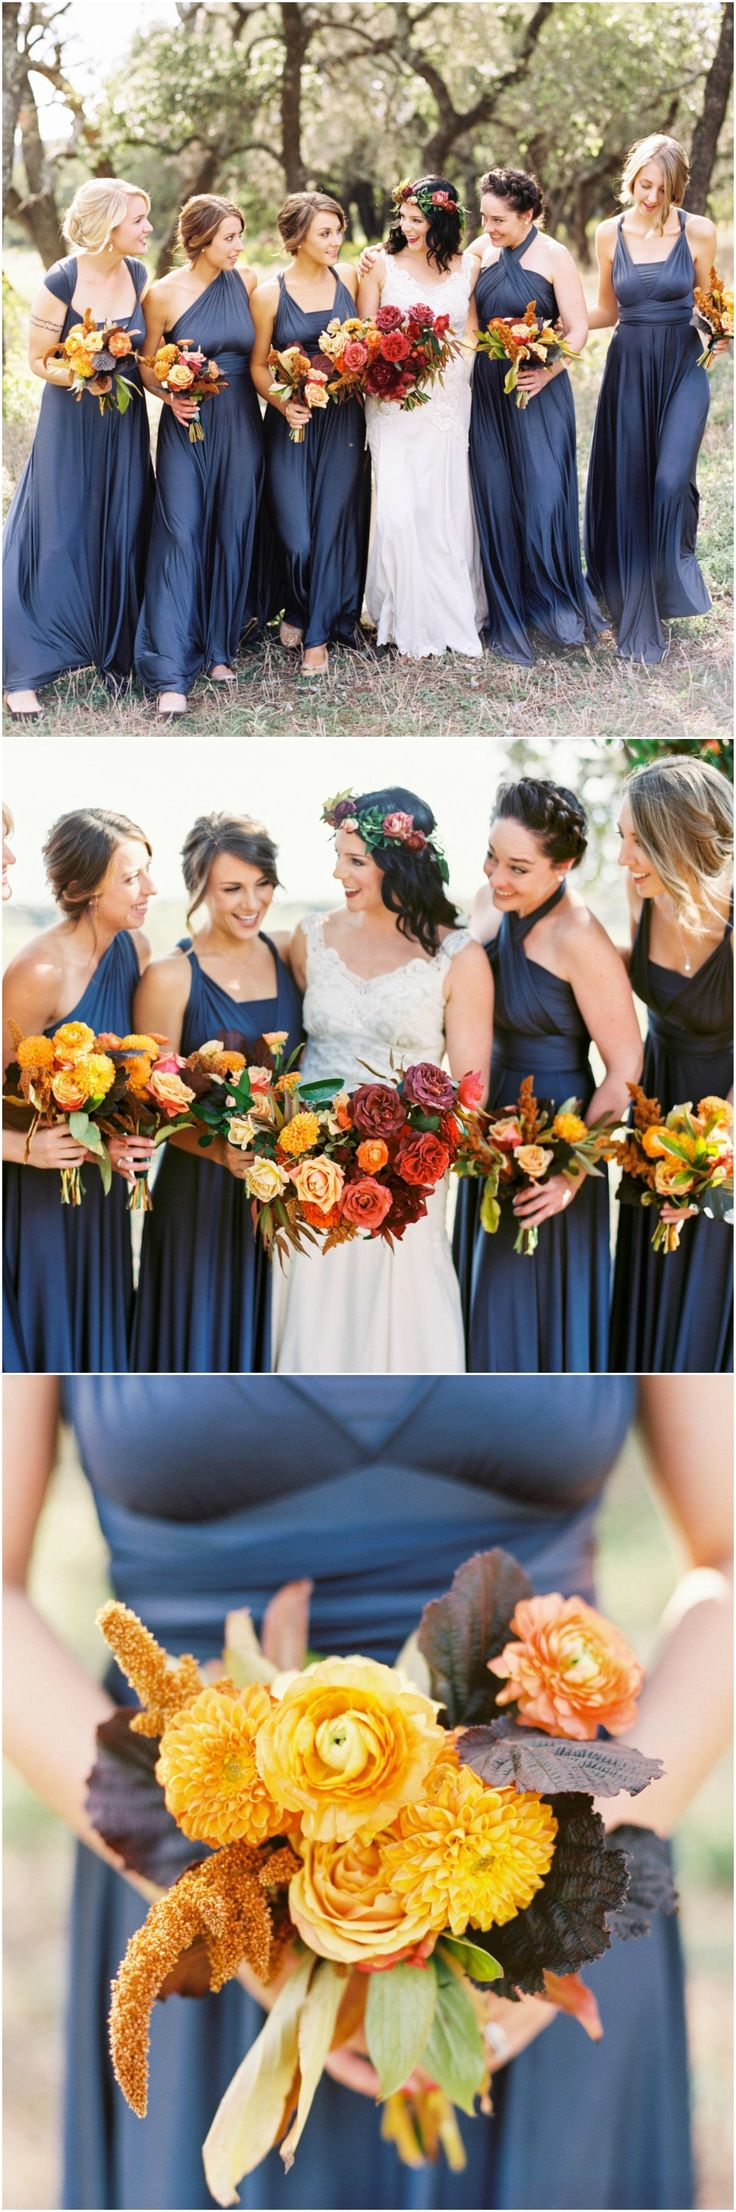 Fall wedding style, bridesmaid fashion, blue silk dress, mismatched necklines, autumnal bouquet, marigold & orange flowers, ranunculus & dahlias // Taylor Lord Photography